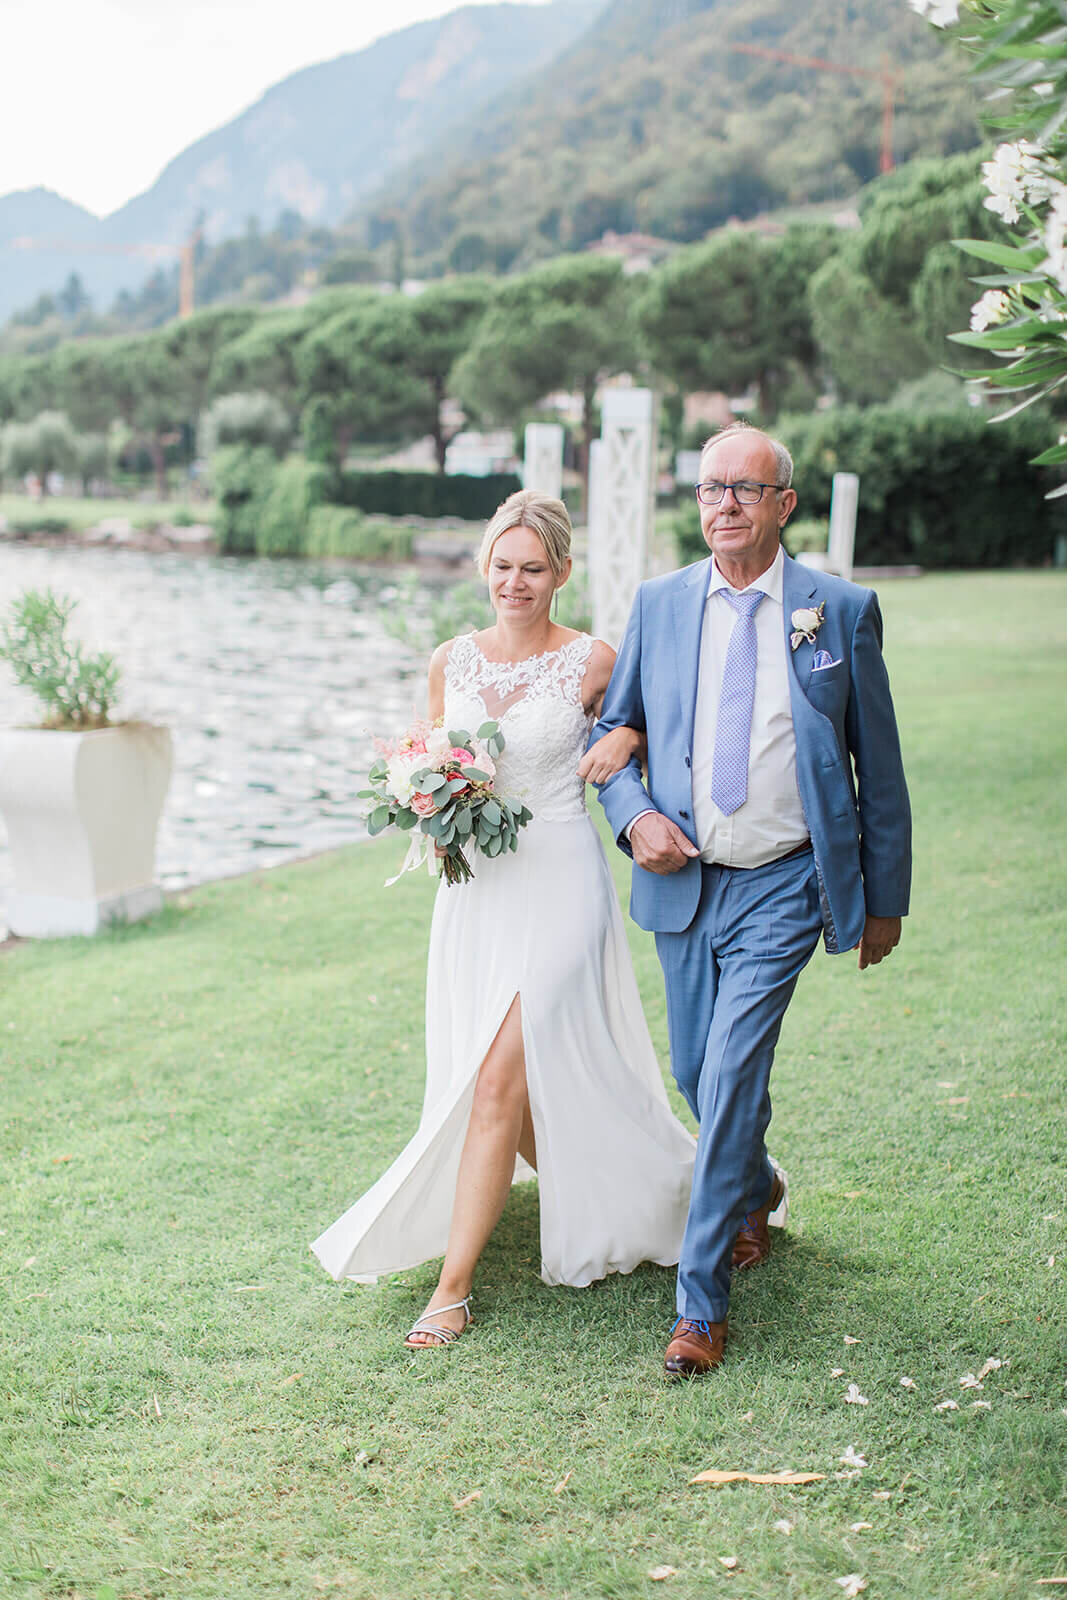 Wedding K&D - Lago d'Iseo - Italy 2018 32